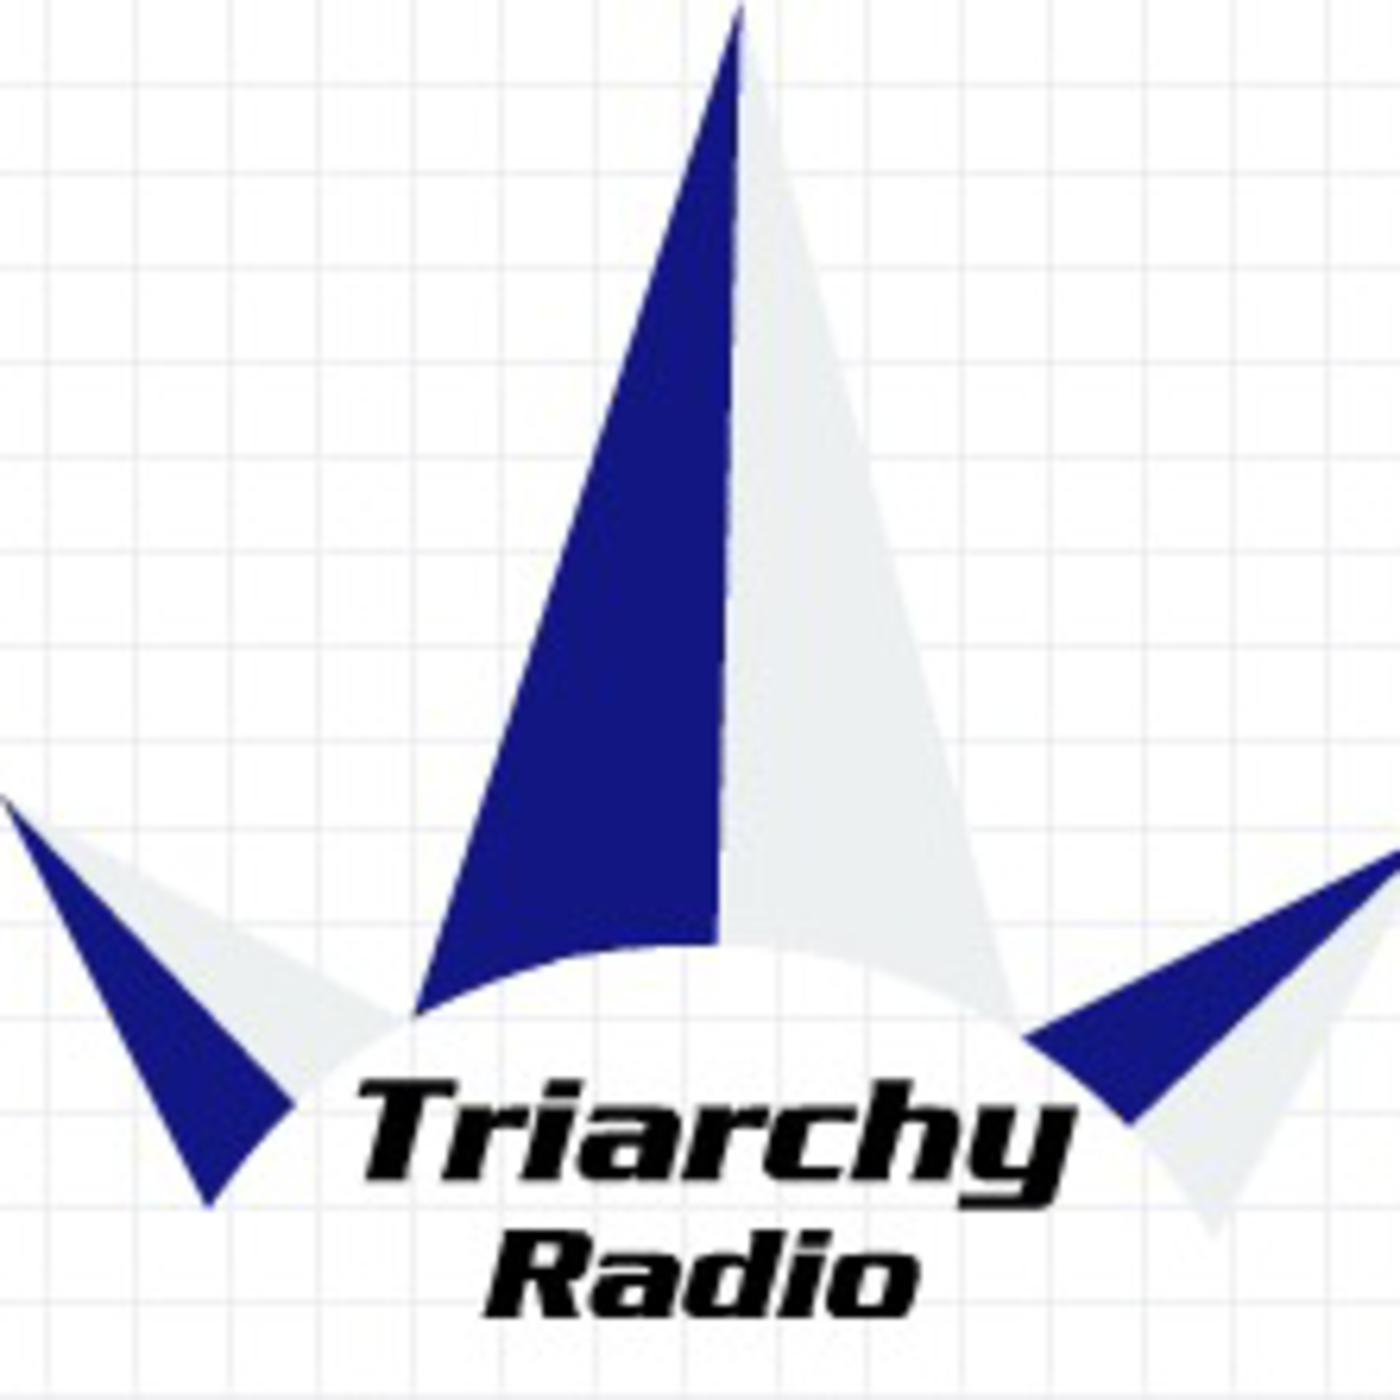 TRIarchy Radio